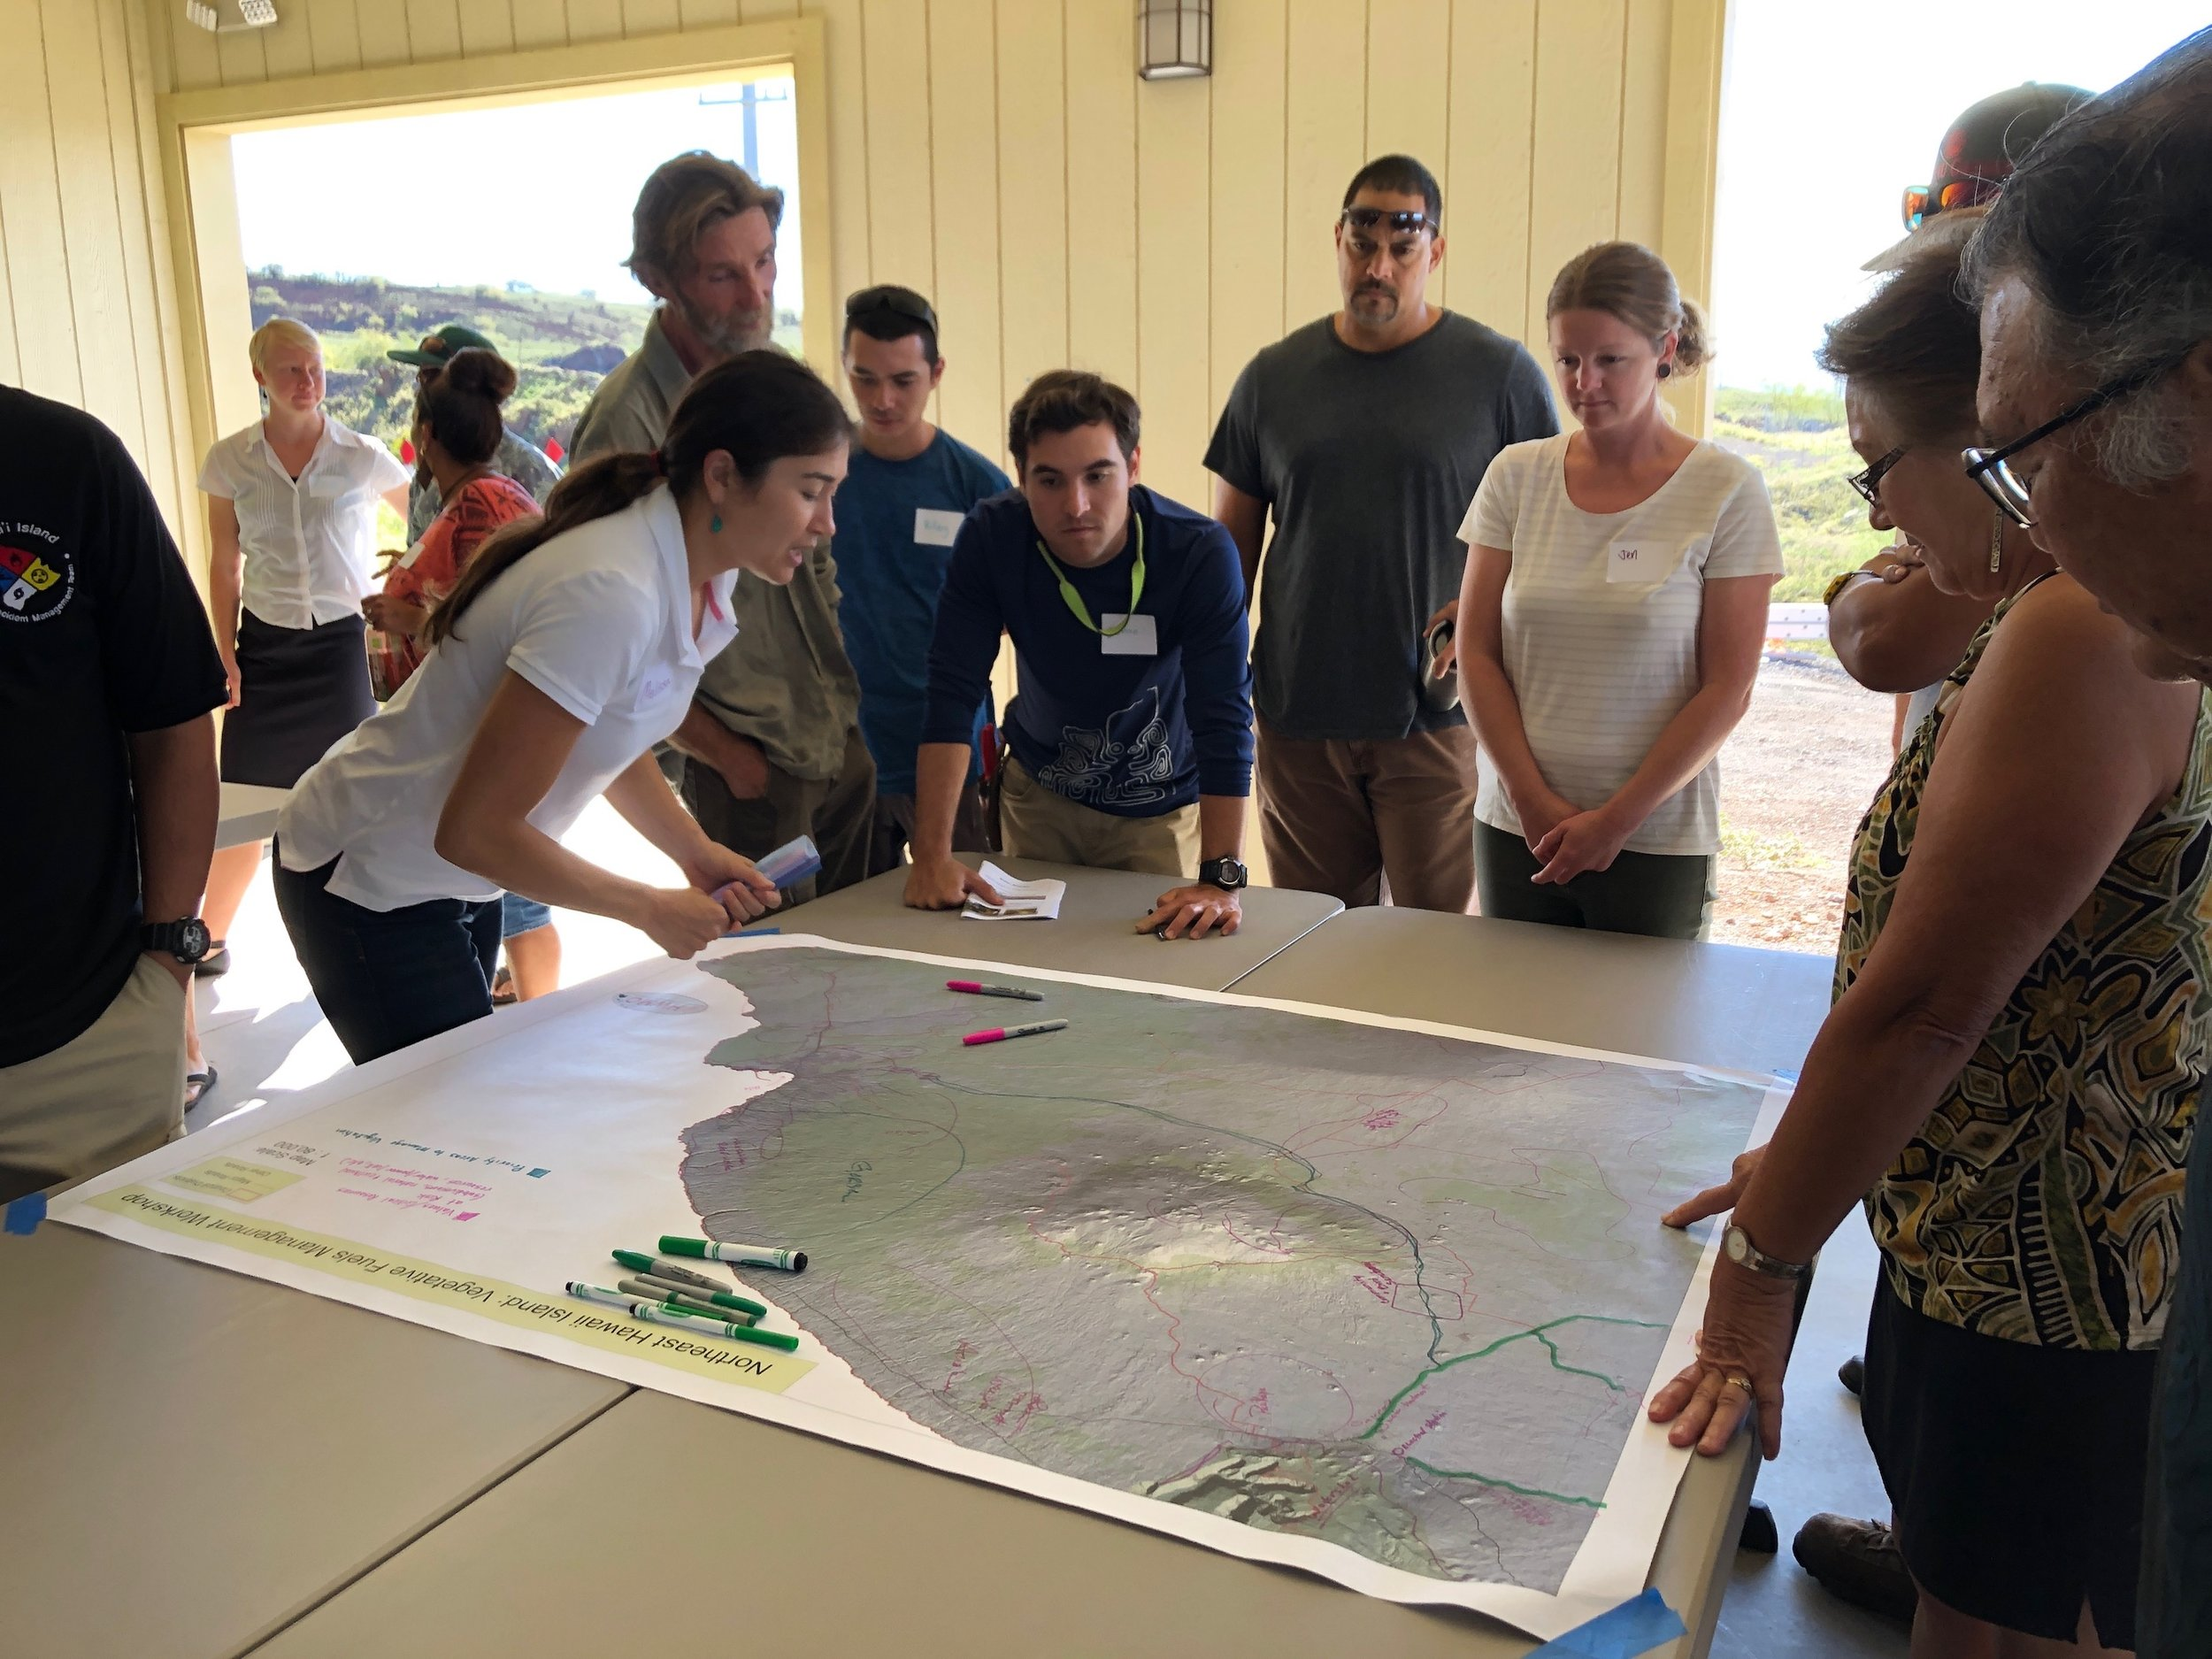 Hawaii Island Kailapa Vegetative Fuels Management Collaborative Action Planning Workshop_2_26_2019_37.jpg